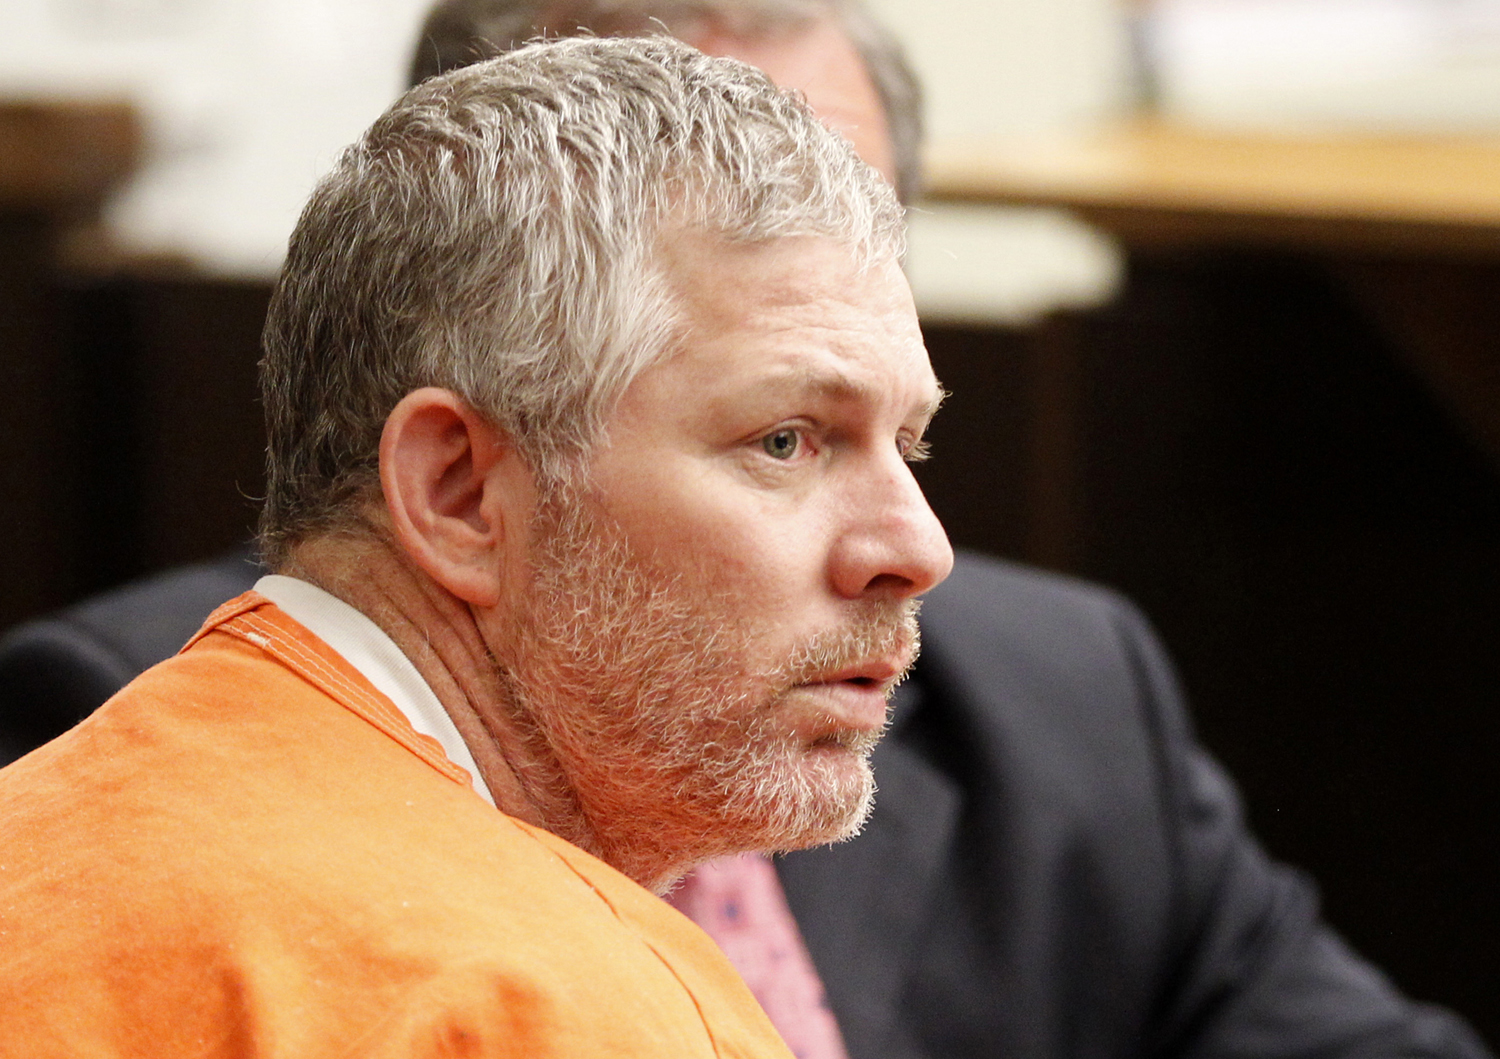 Former Major League baseball player Lenny Dykstra filed suit against the Los Angeles County Sheriff's Department on Wednesday.